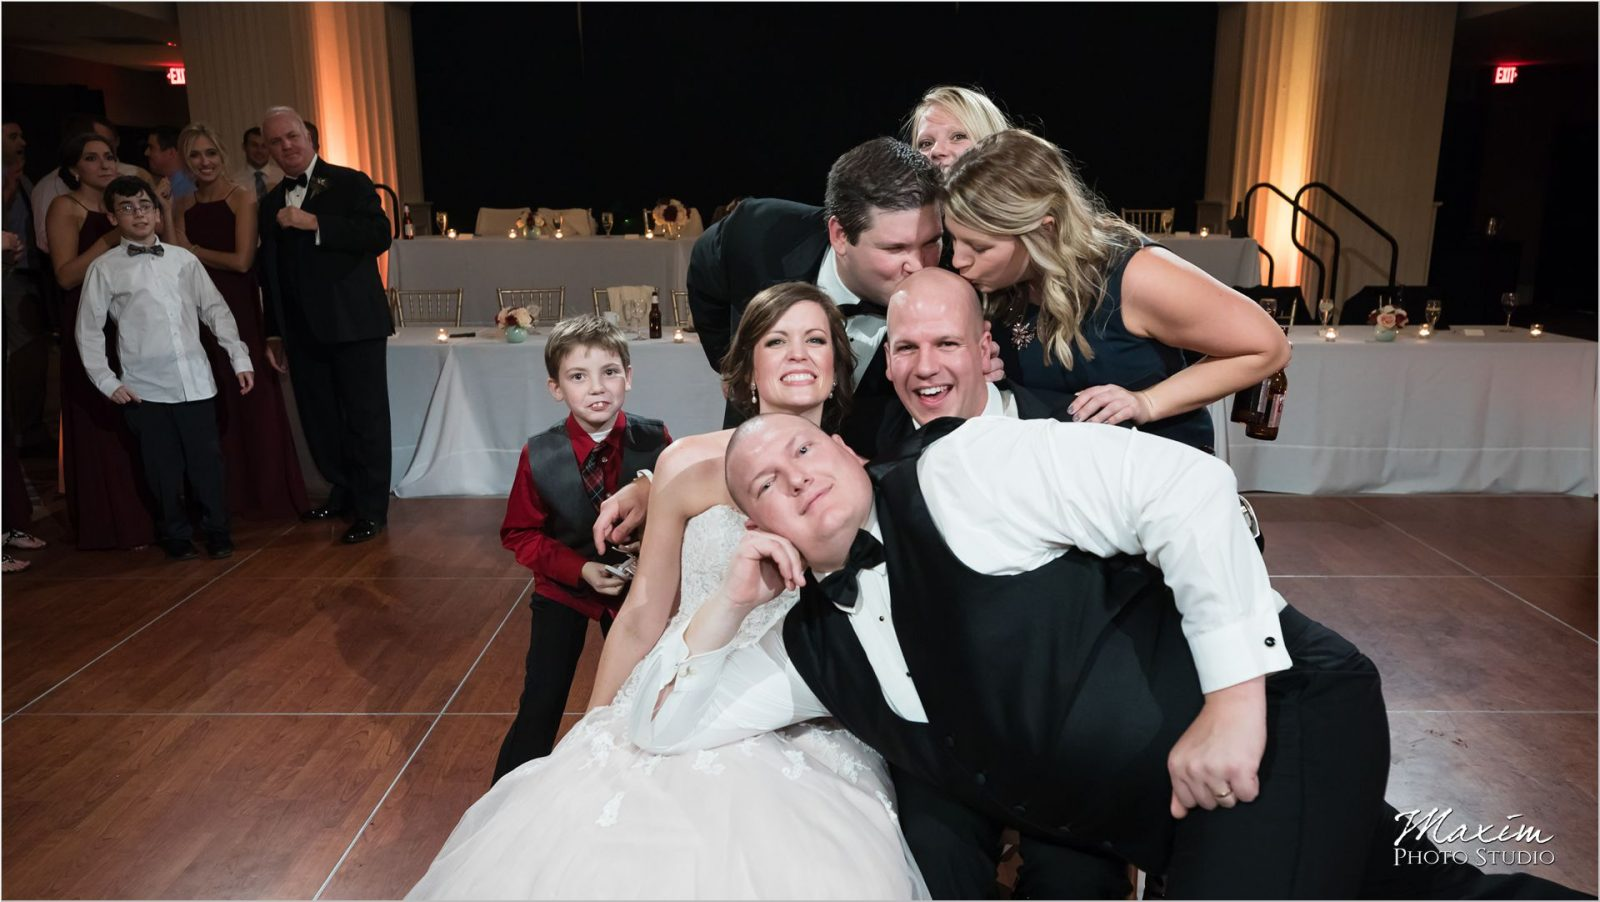 Renaissance Hotel Cincinnati Wedding reception photo bomb